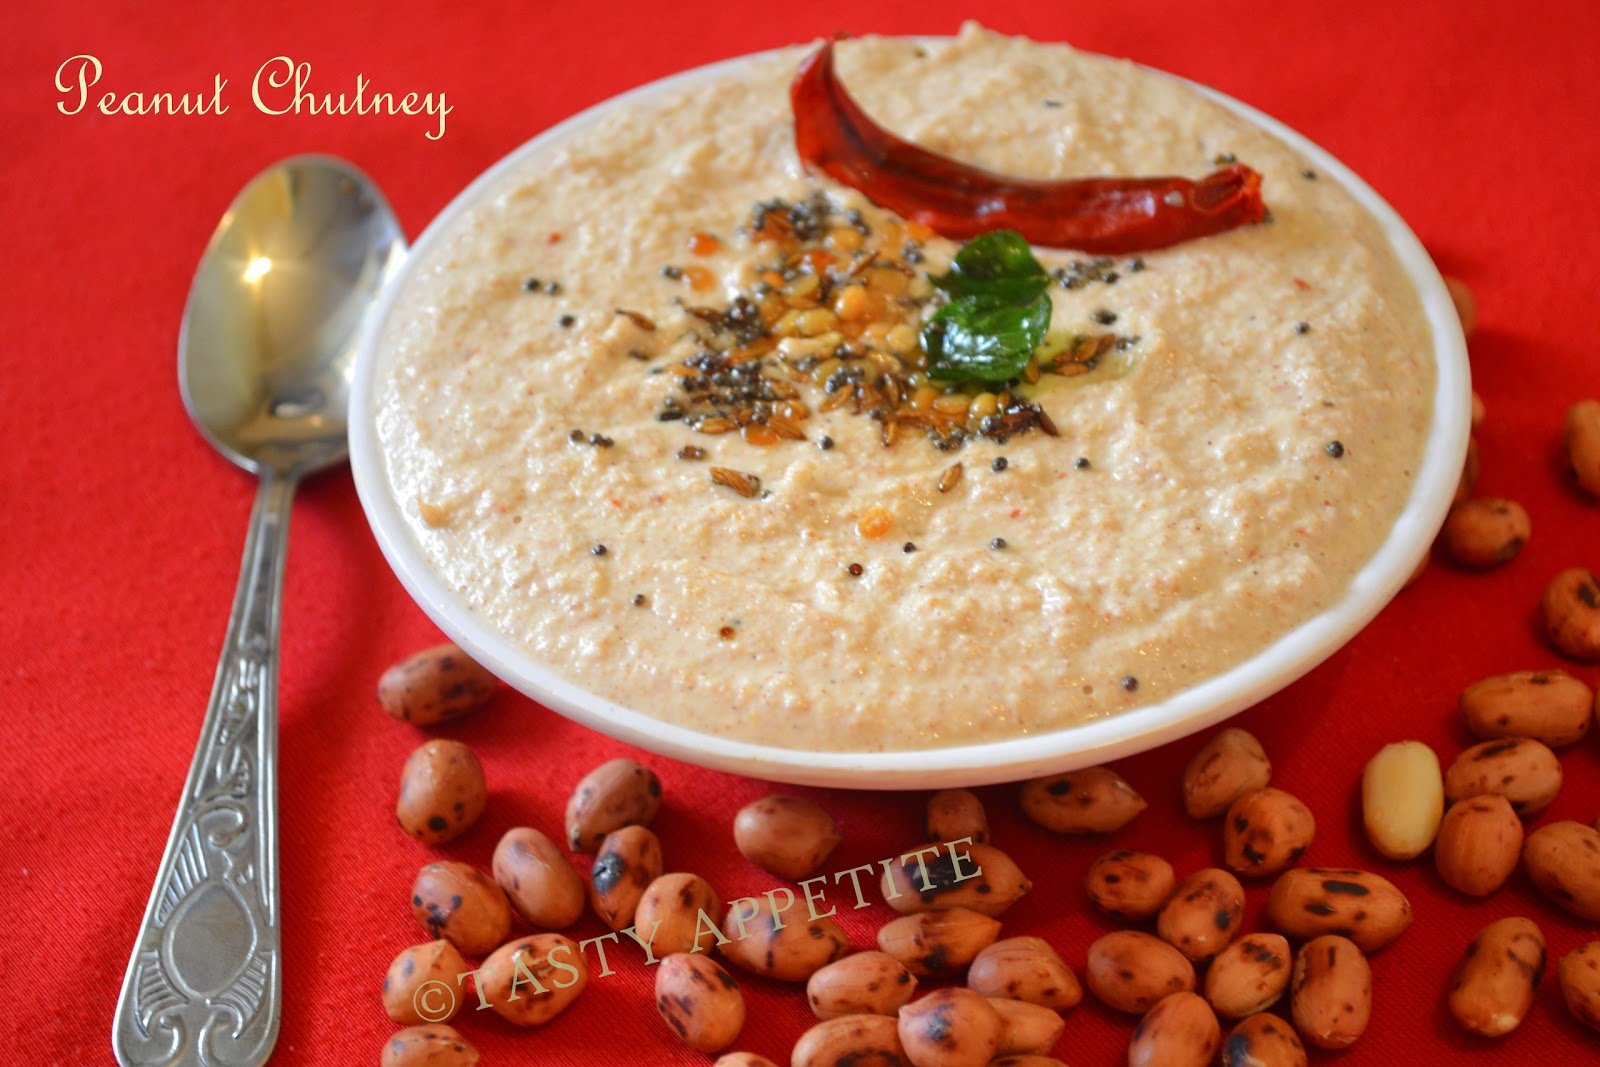 recipe: how to make peanut chutney in hindi [13]